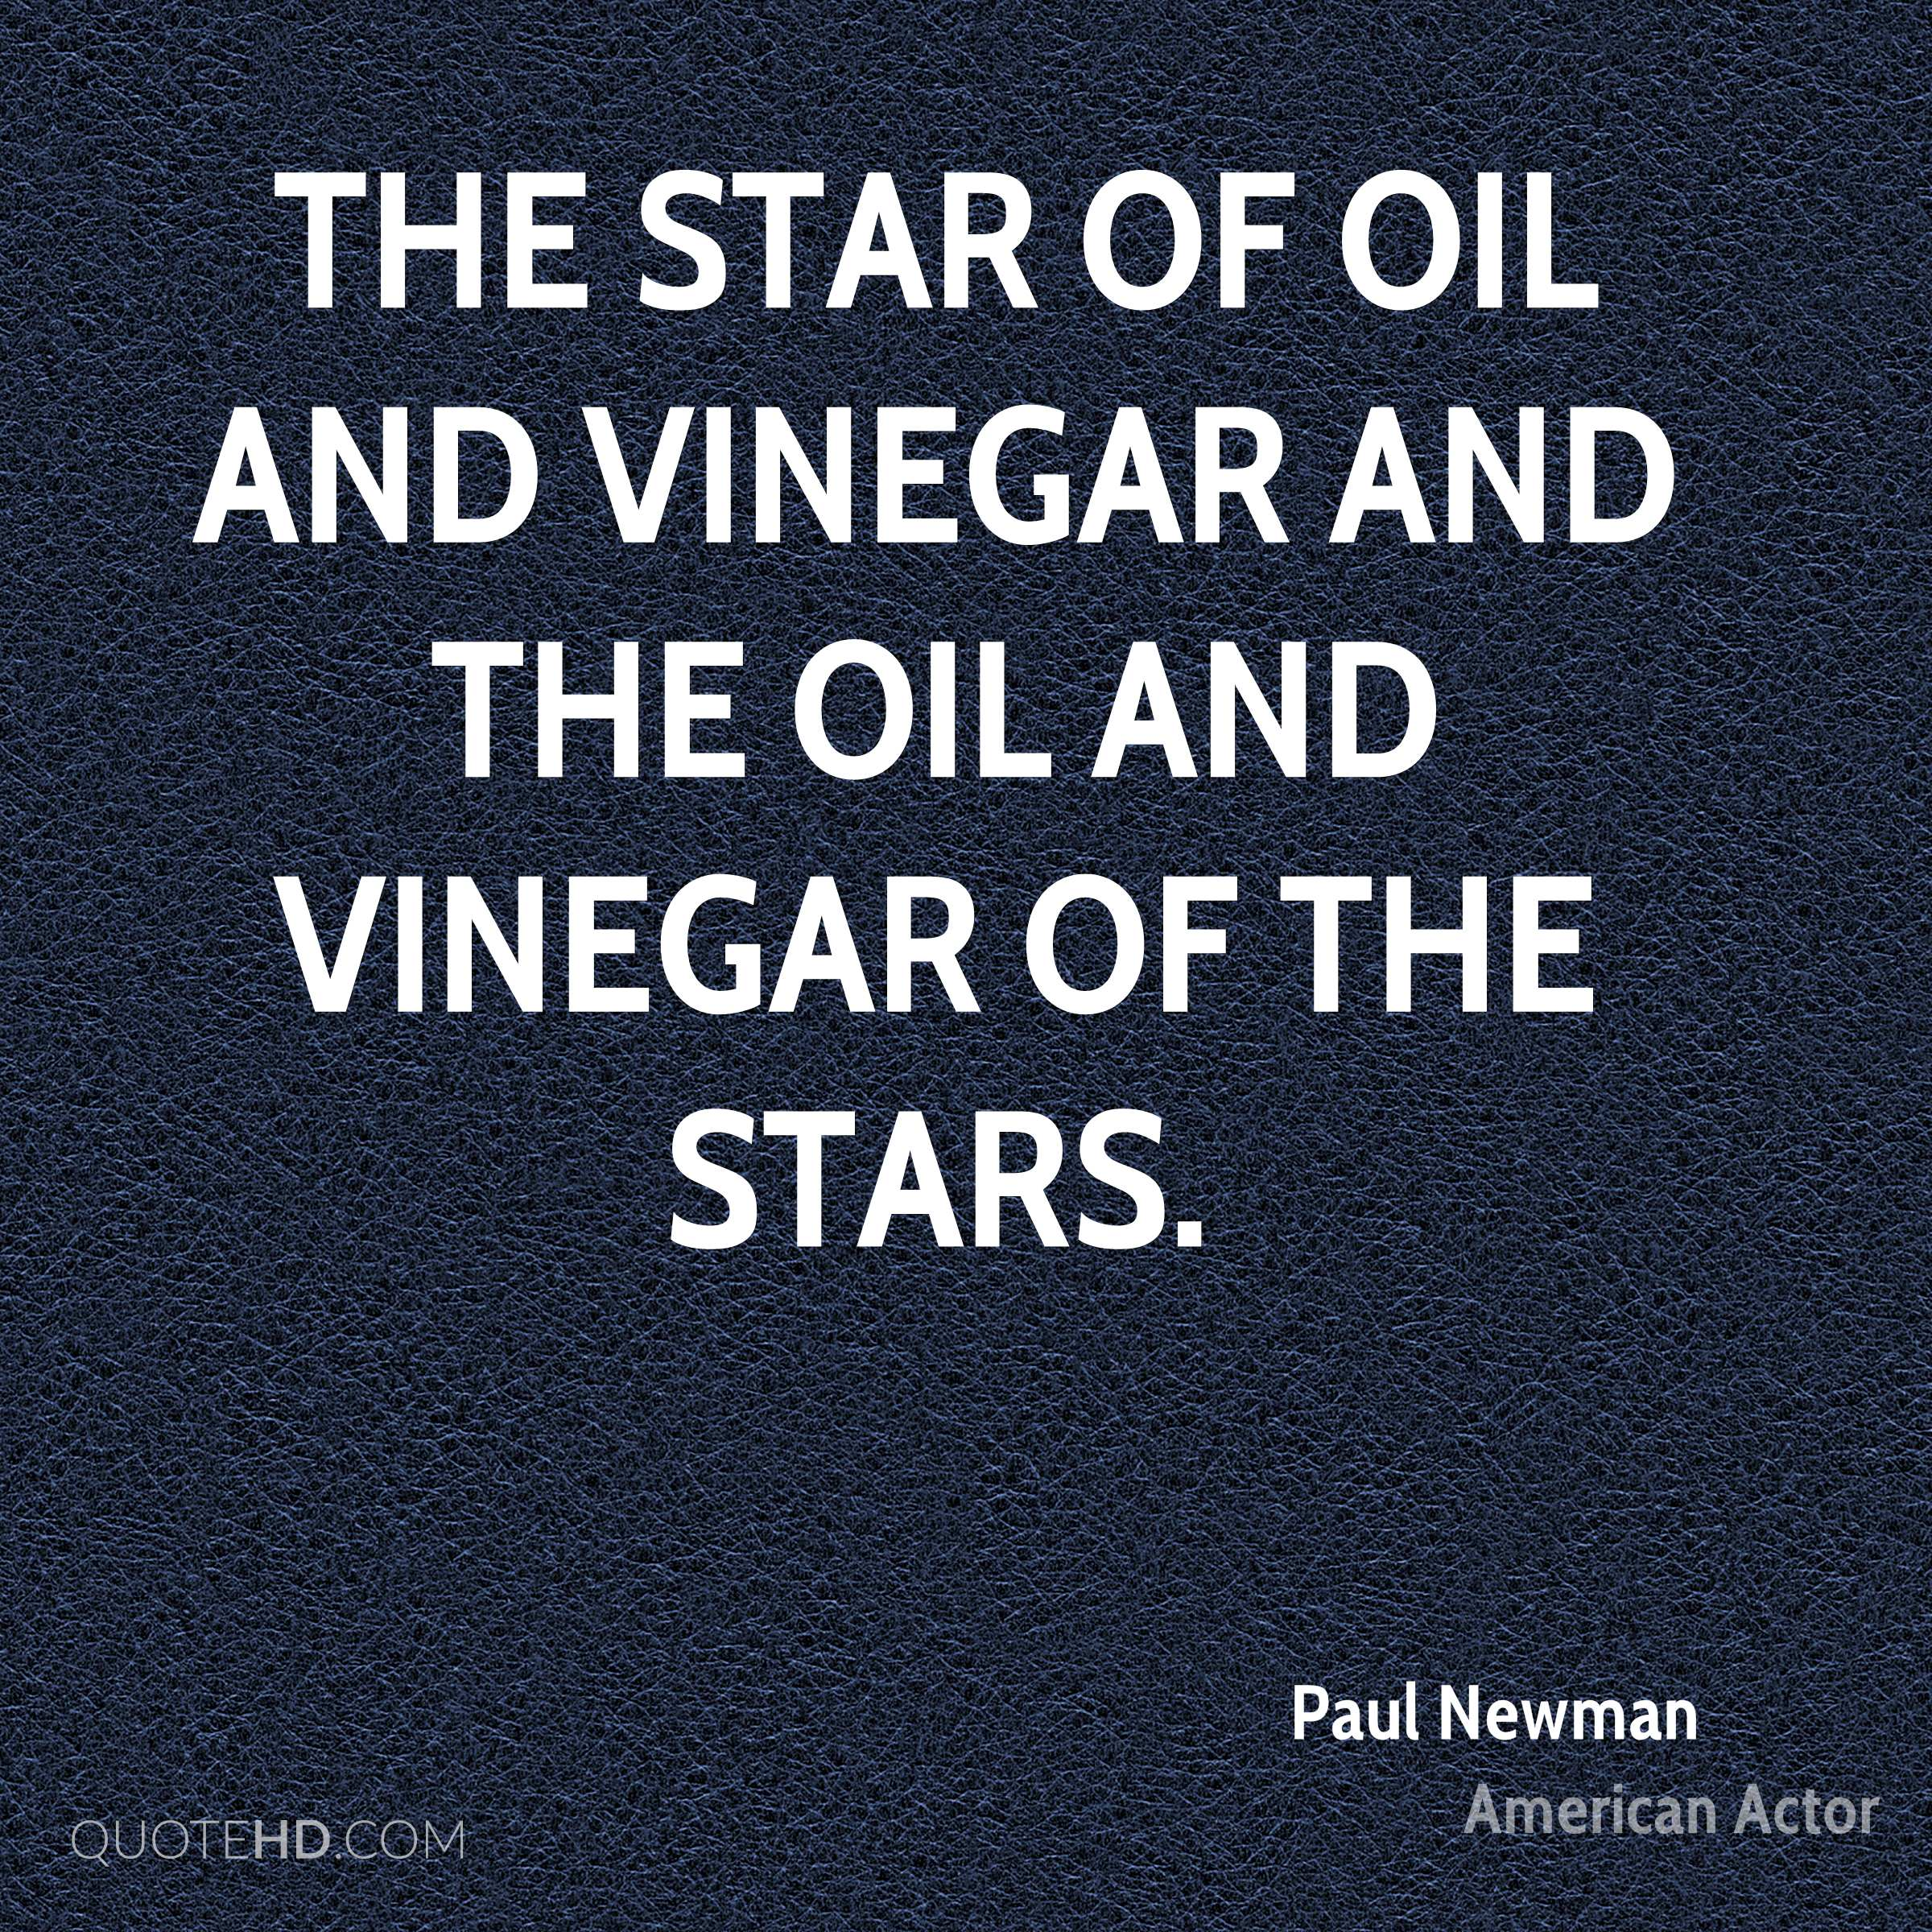 The star of oil and vinegar and the oil and vinegar of the stars.